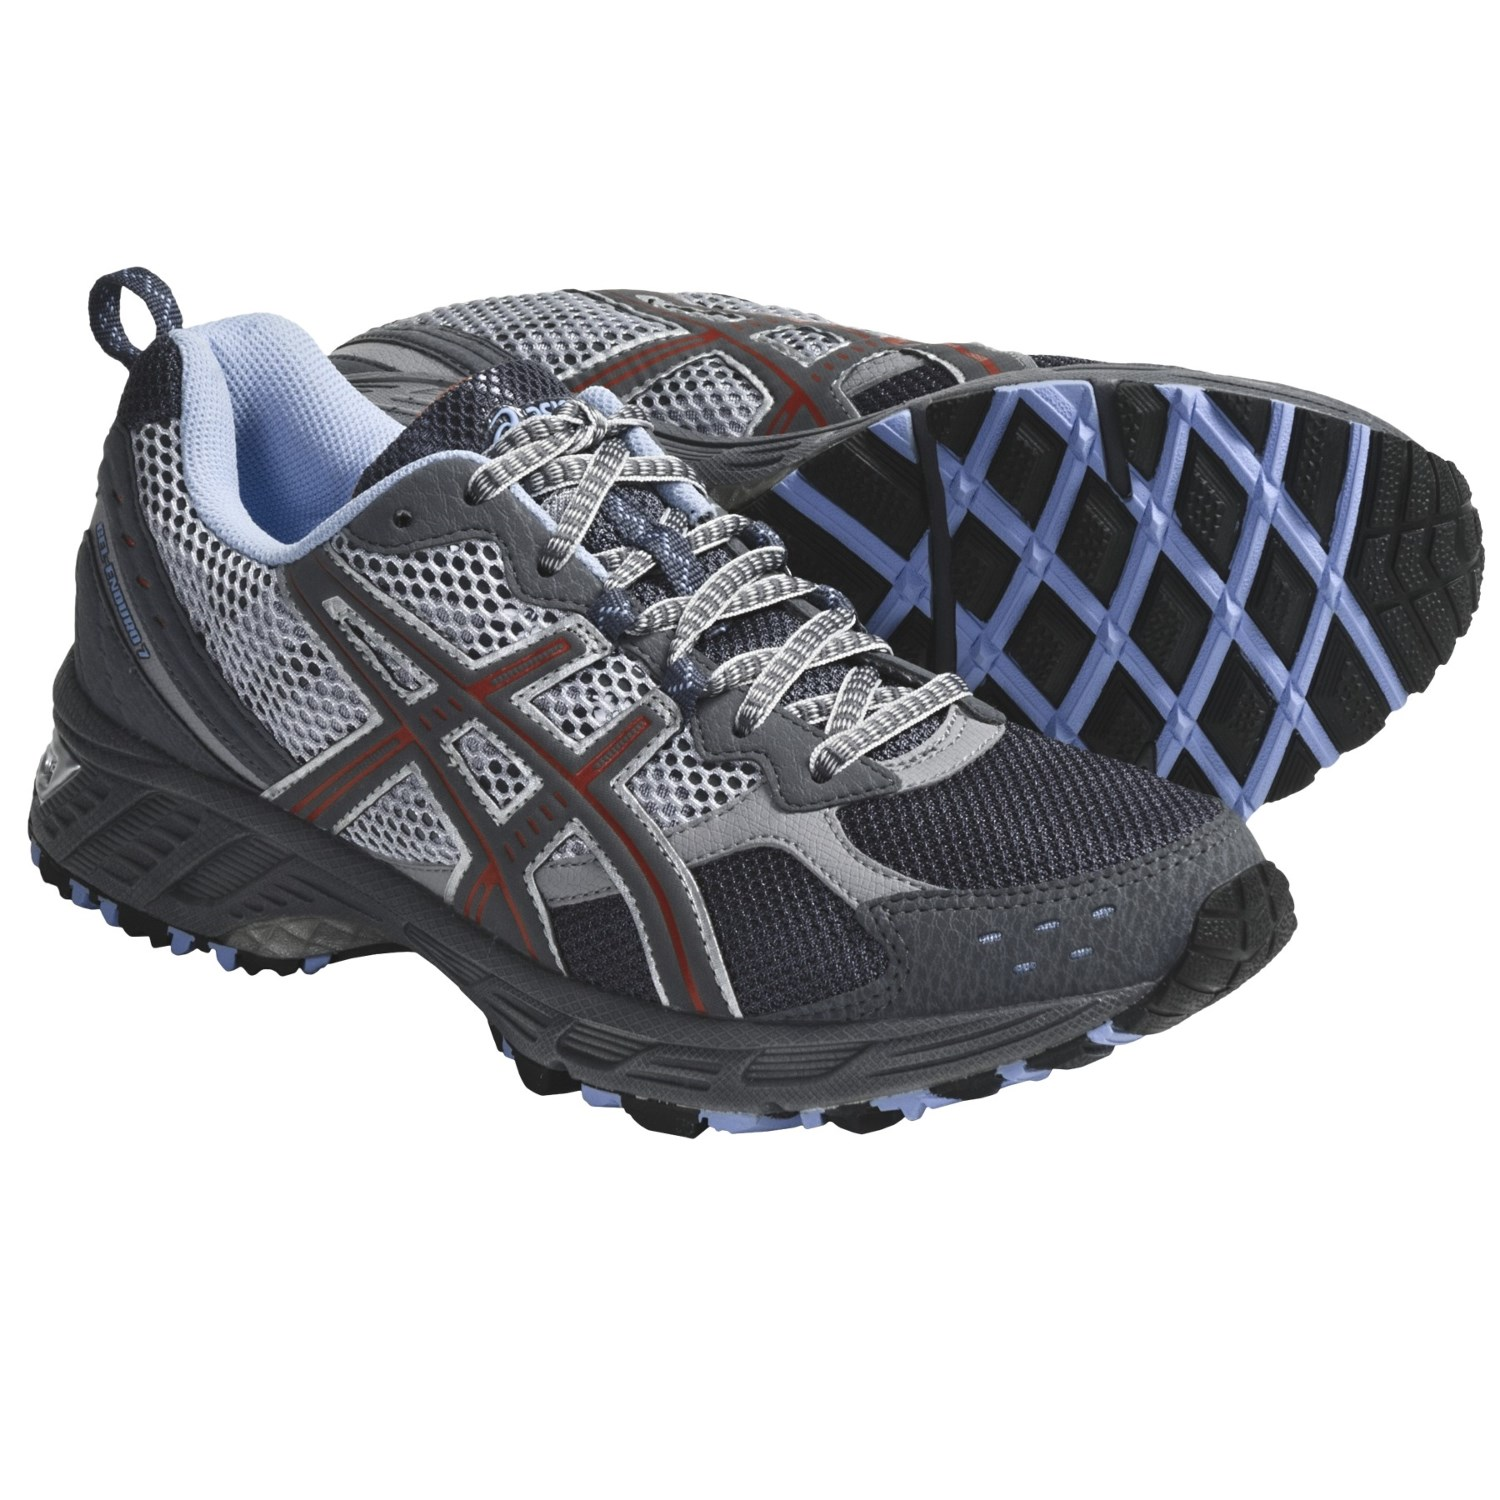 Asics GEL-Enduro 7 Trail Running Shoes (For Women) in Titanium/Carbon